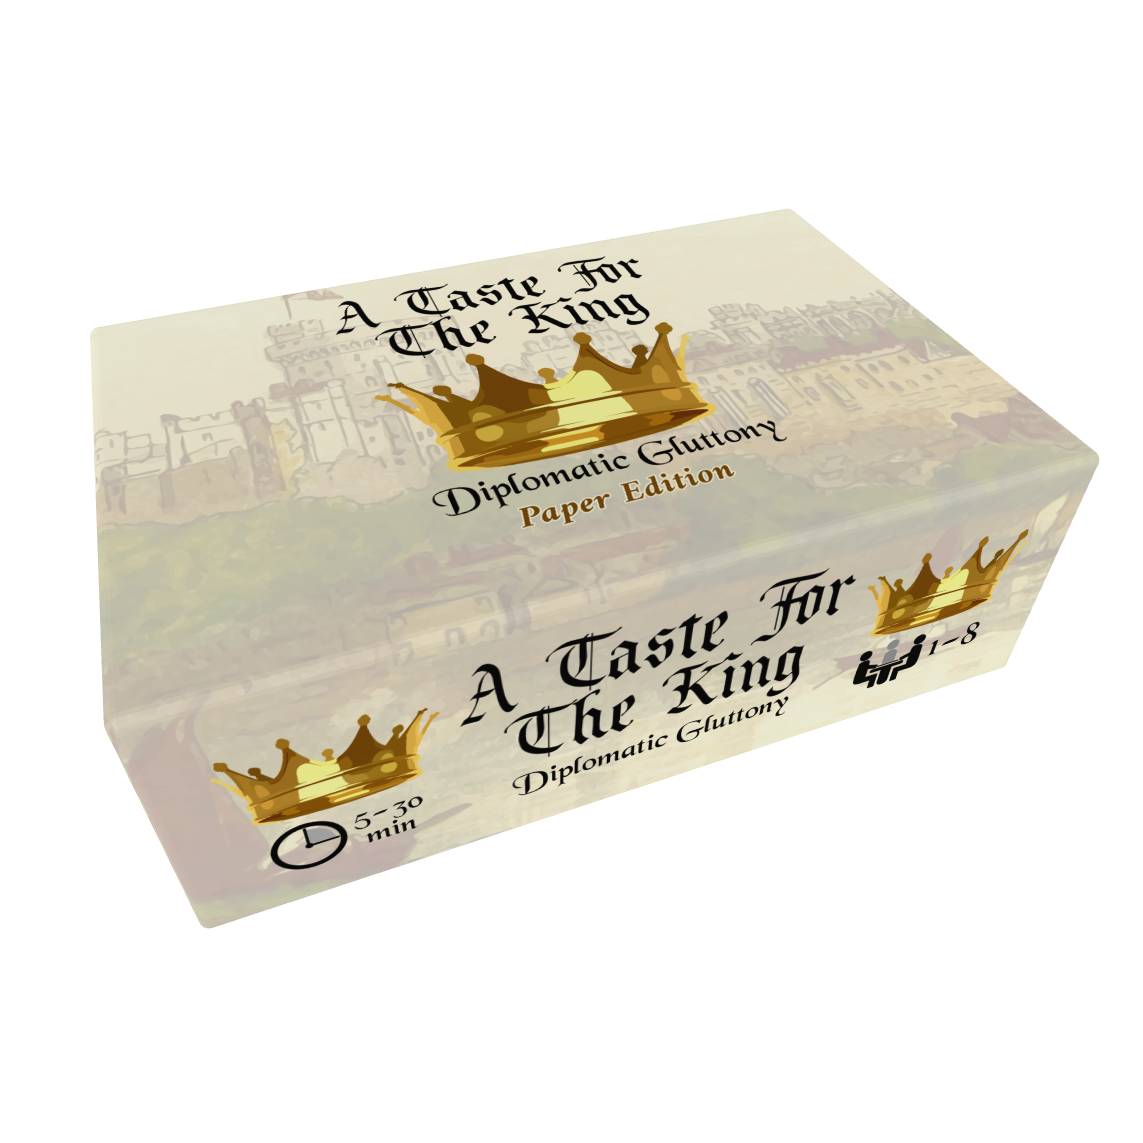 Mockup of the box art for the paper edition of A Taste for the King